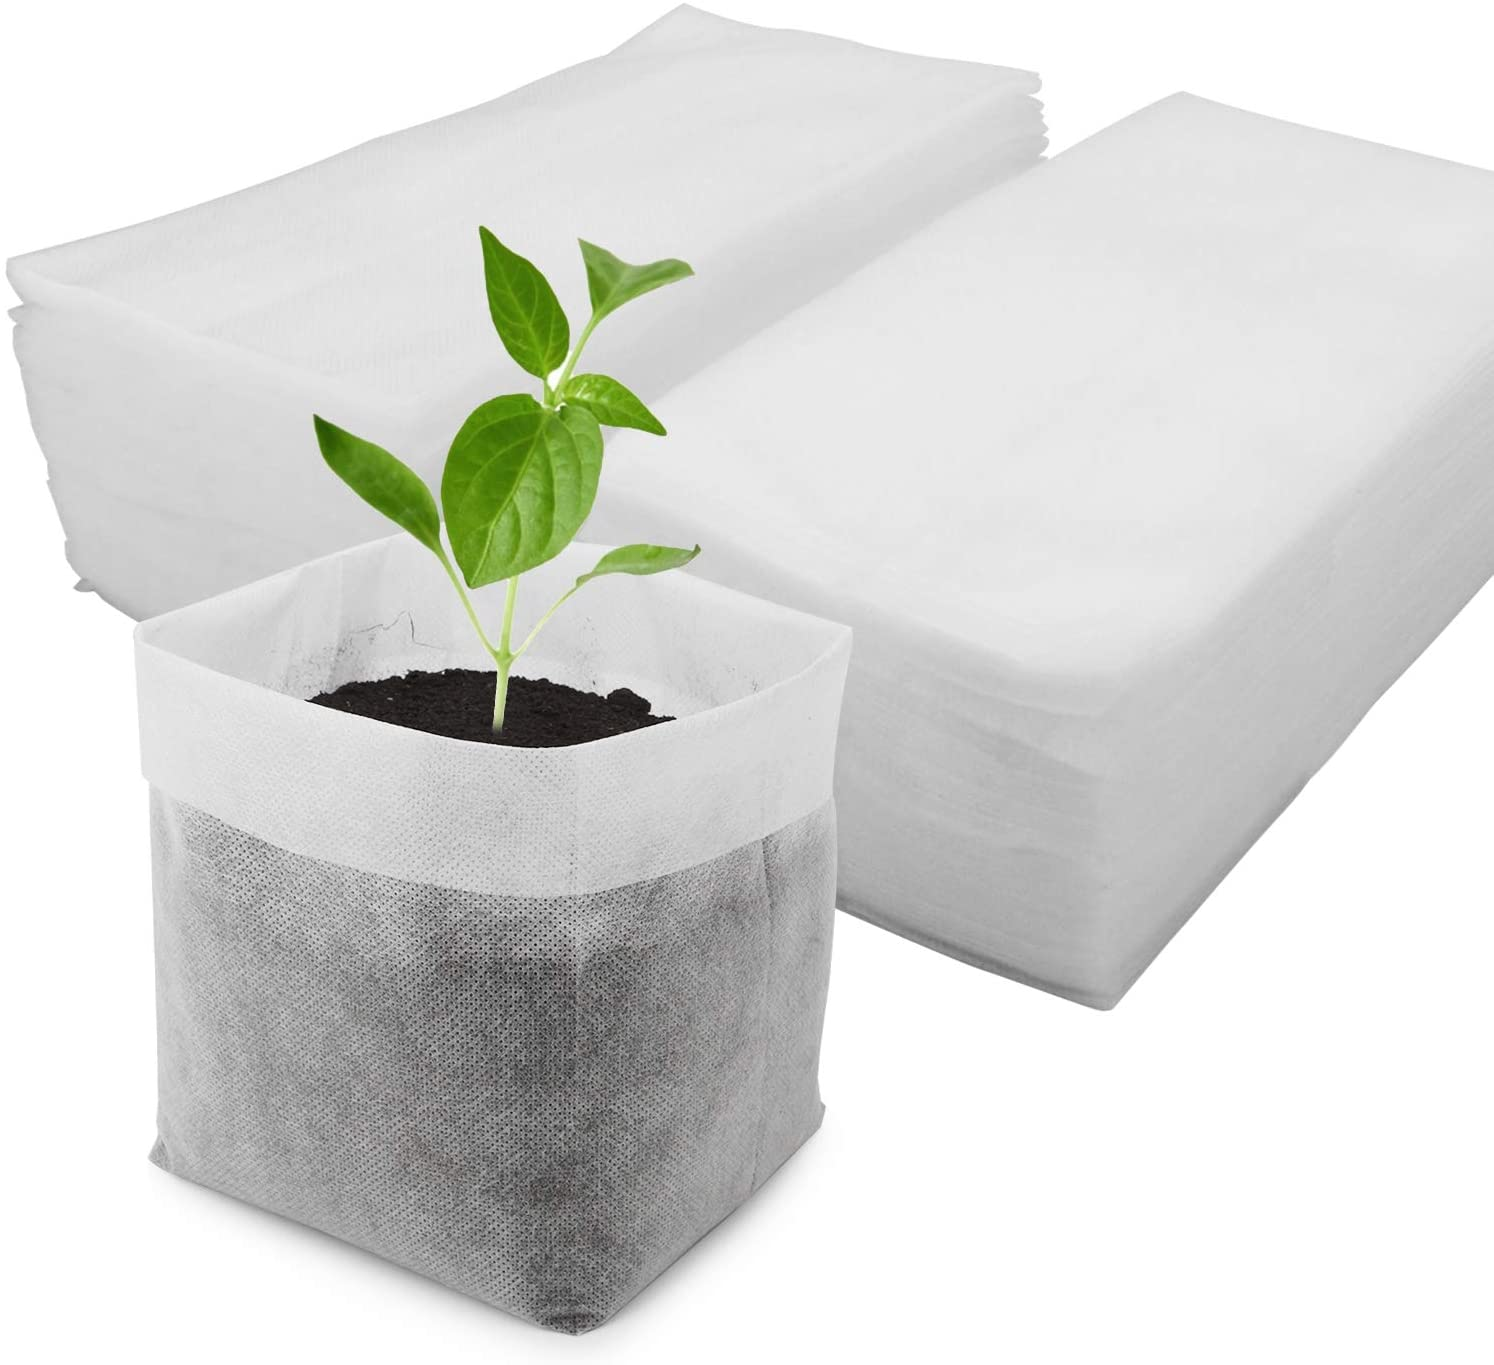 Large Plant Grow Bags, Degradable Non-Woven Plant Seedling Bags Fabric Pots for Seedling